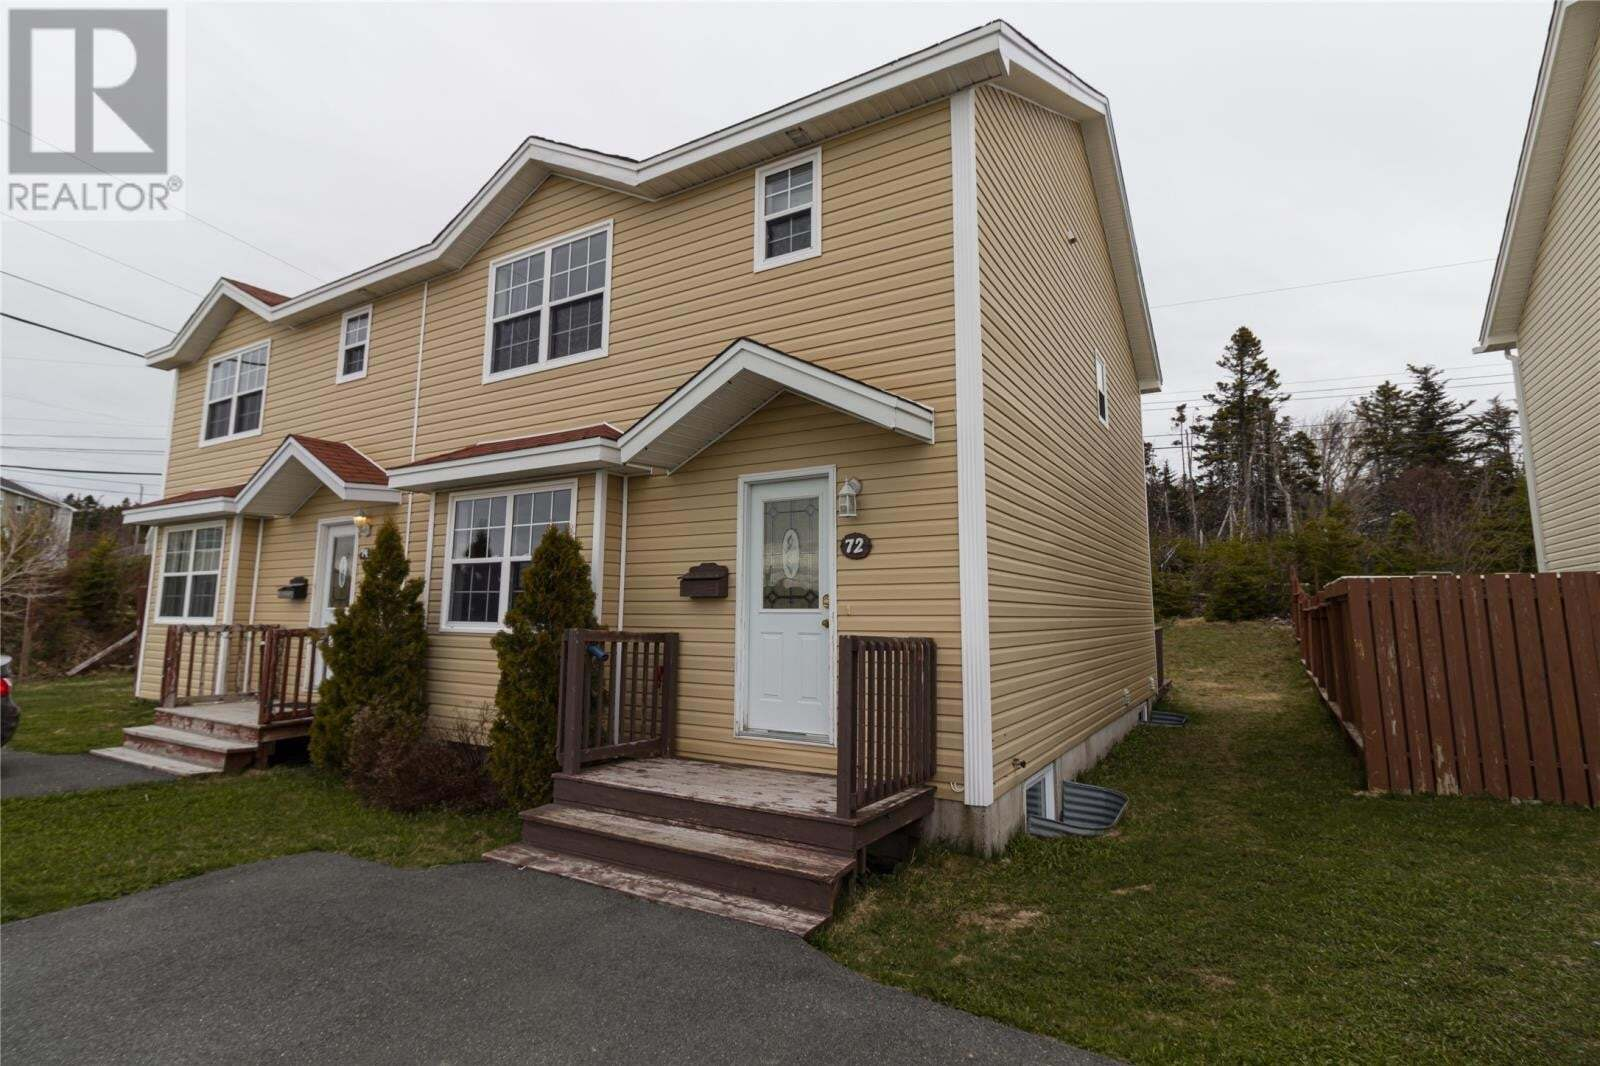 House for sale at 72 Seaborn St St. John's Newfoundland - MLS: 1214146